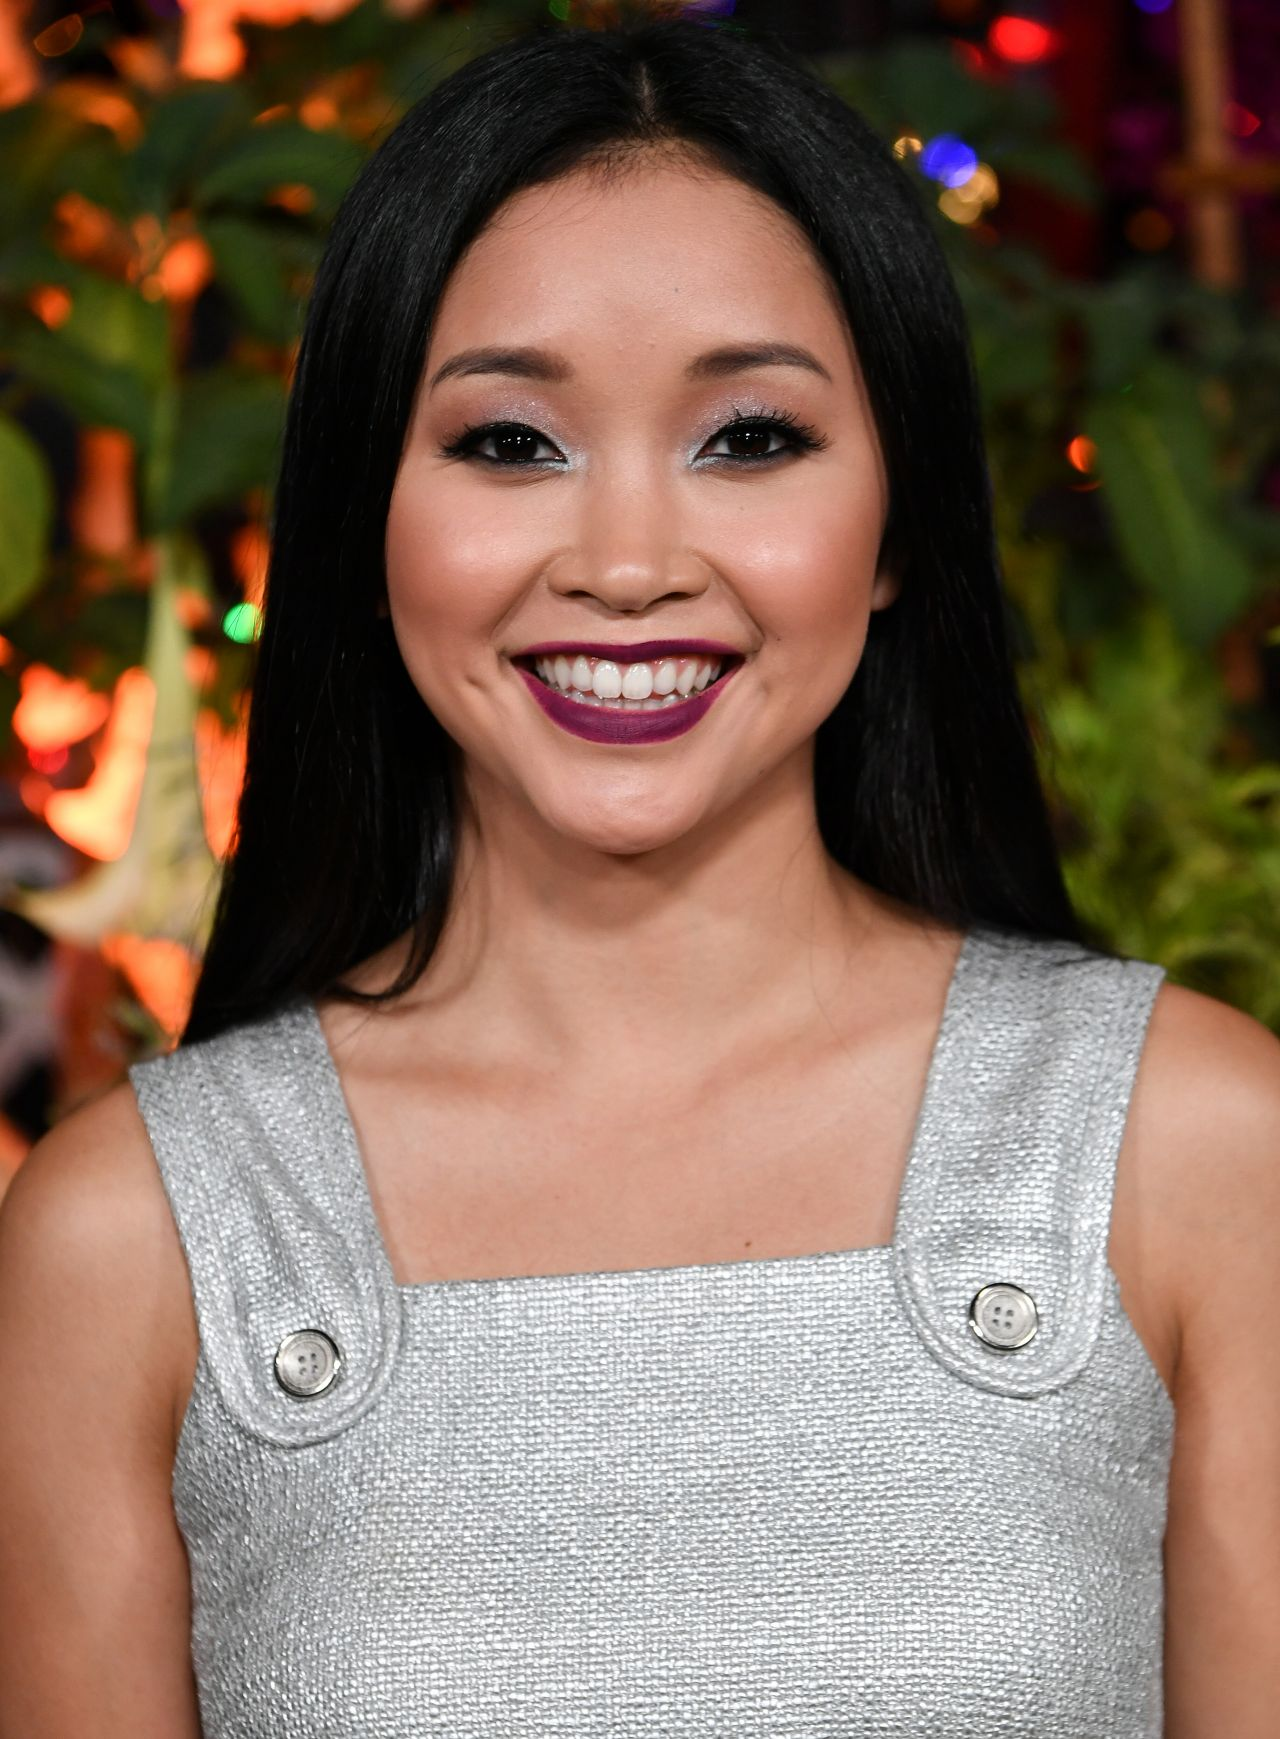 Celebrites Lana Condor naked (95 foto and video), Tits, Leaked, Instagram, braless 2020